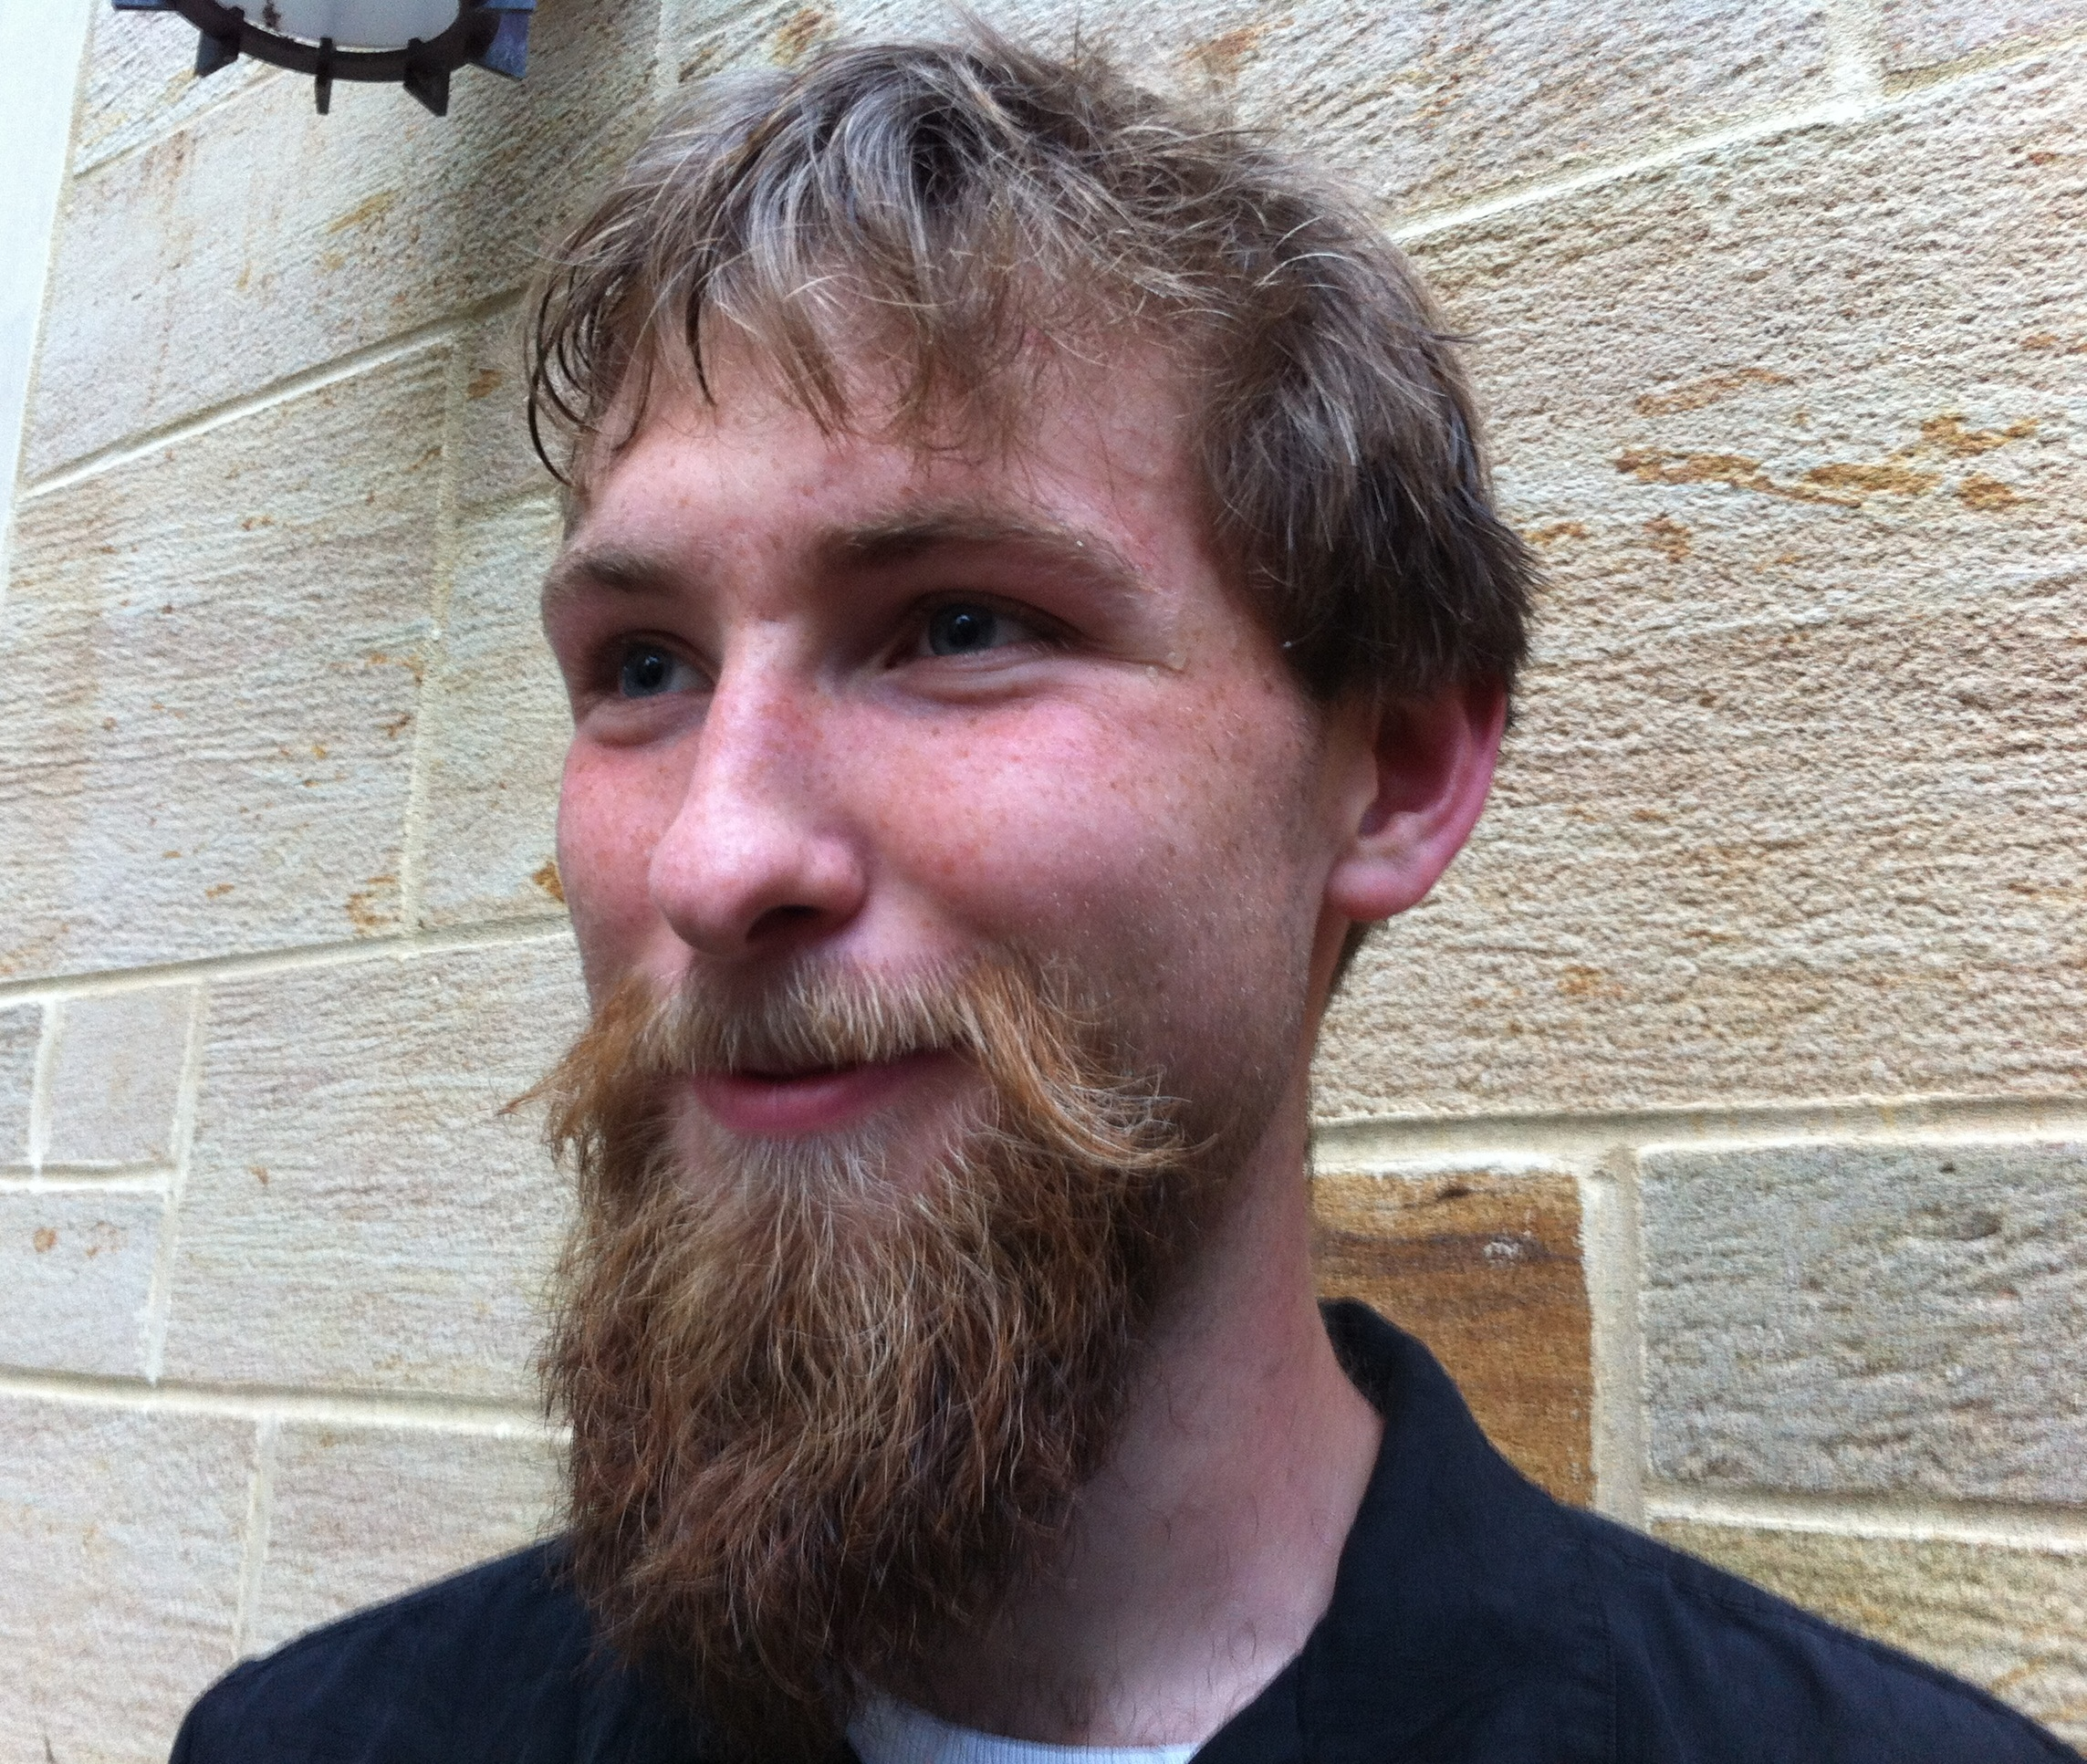 Zach Gunzelman On Twitter In A Week I M Going To Trim My Beard Abbie Said If Get 15 Retweets Can Wait An Extra